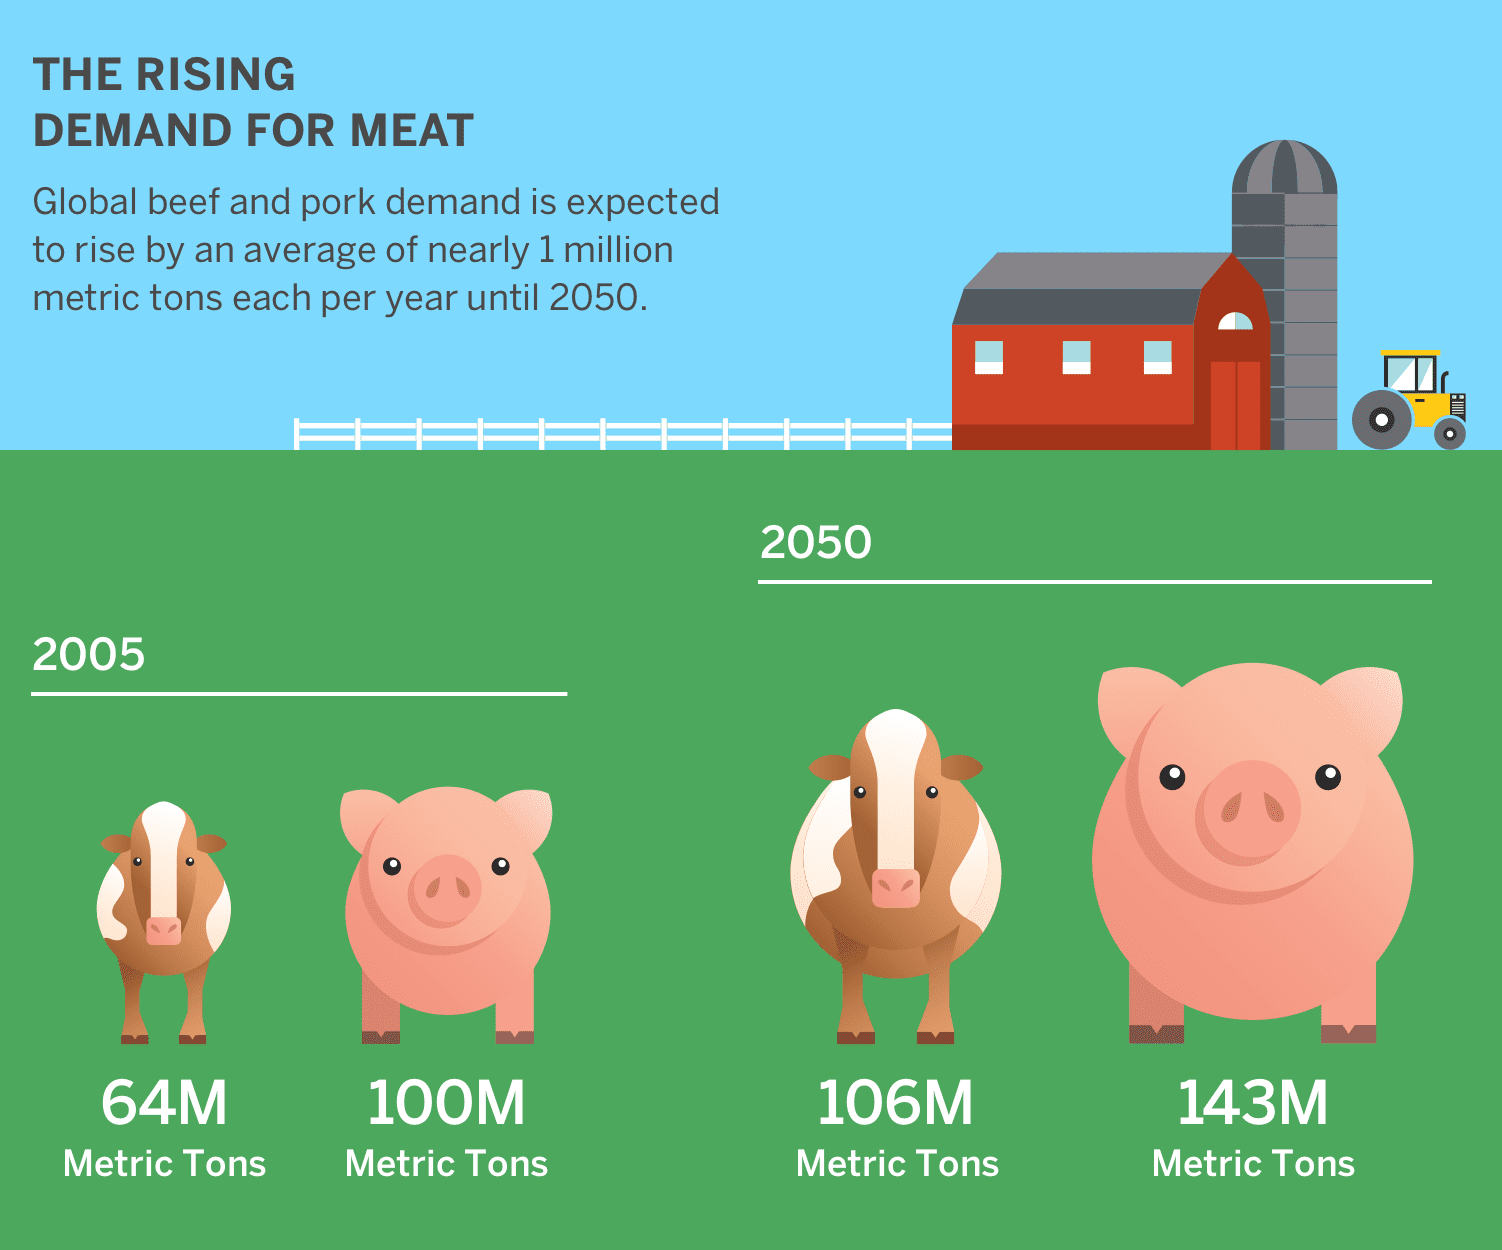 [rising demand for meat infographic]